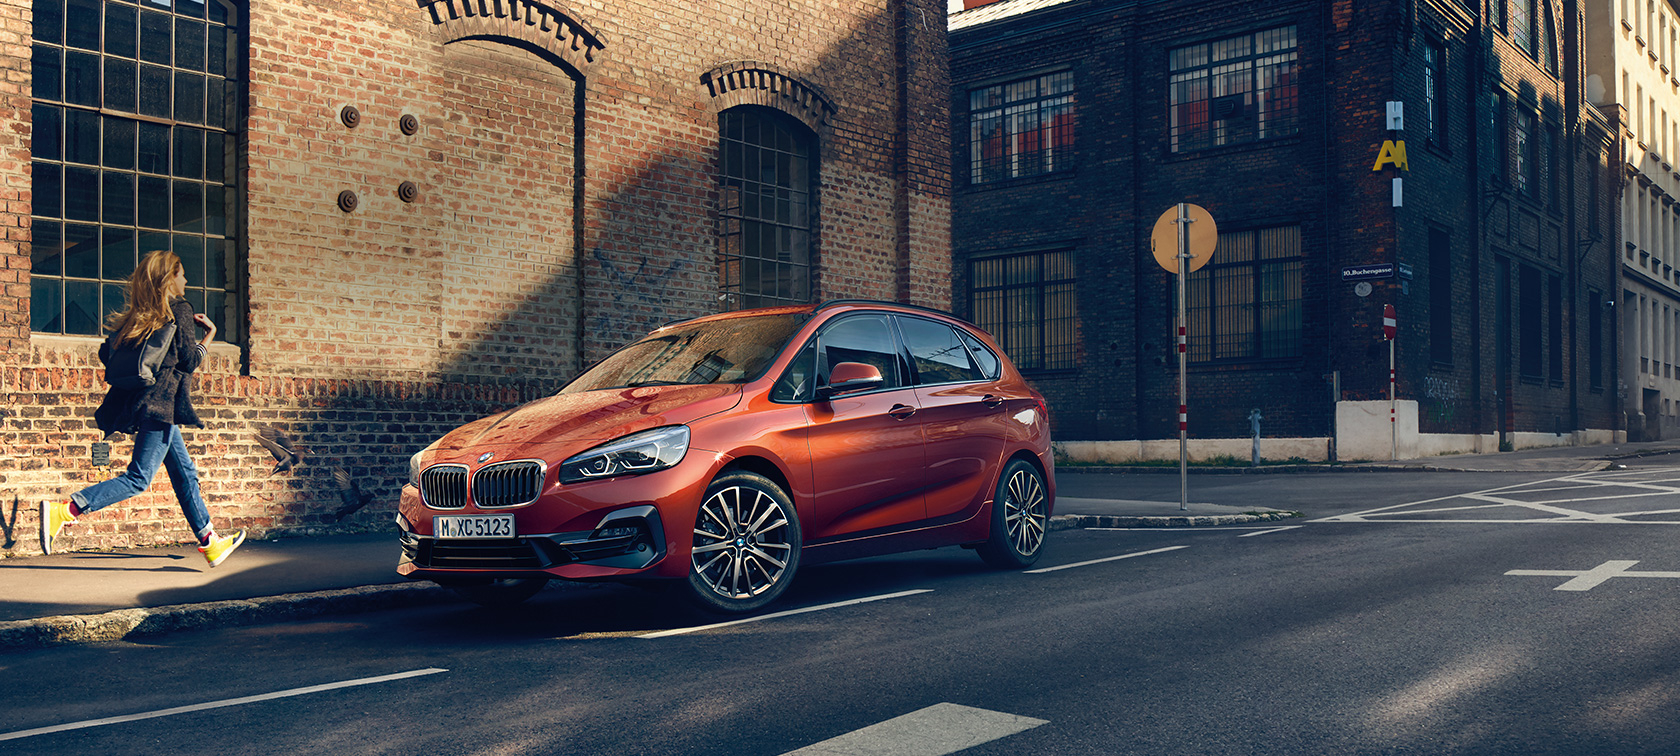 BMW 2er Active Tourer F45 Facelift 2018 Sunset Orange metallic Dreiviertel-Frontansicht parkend auf der Straße